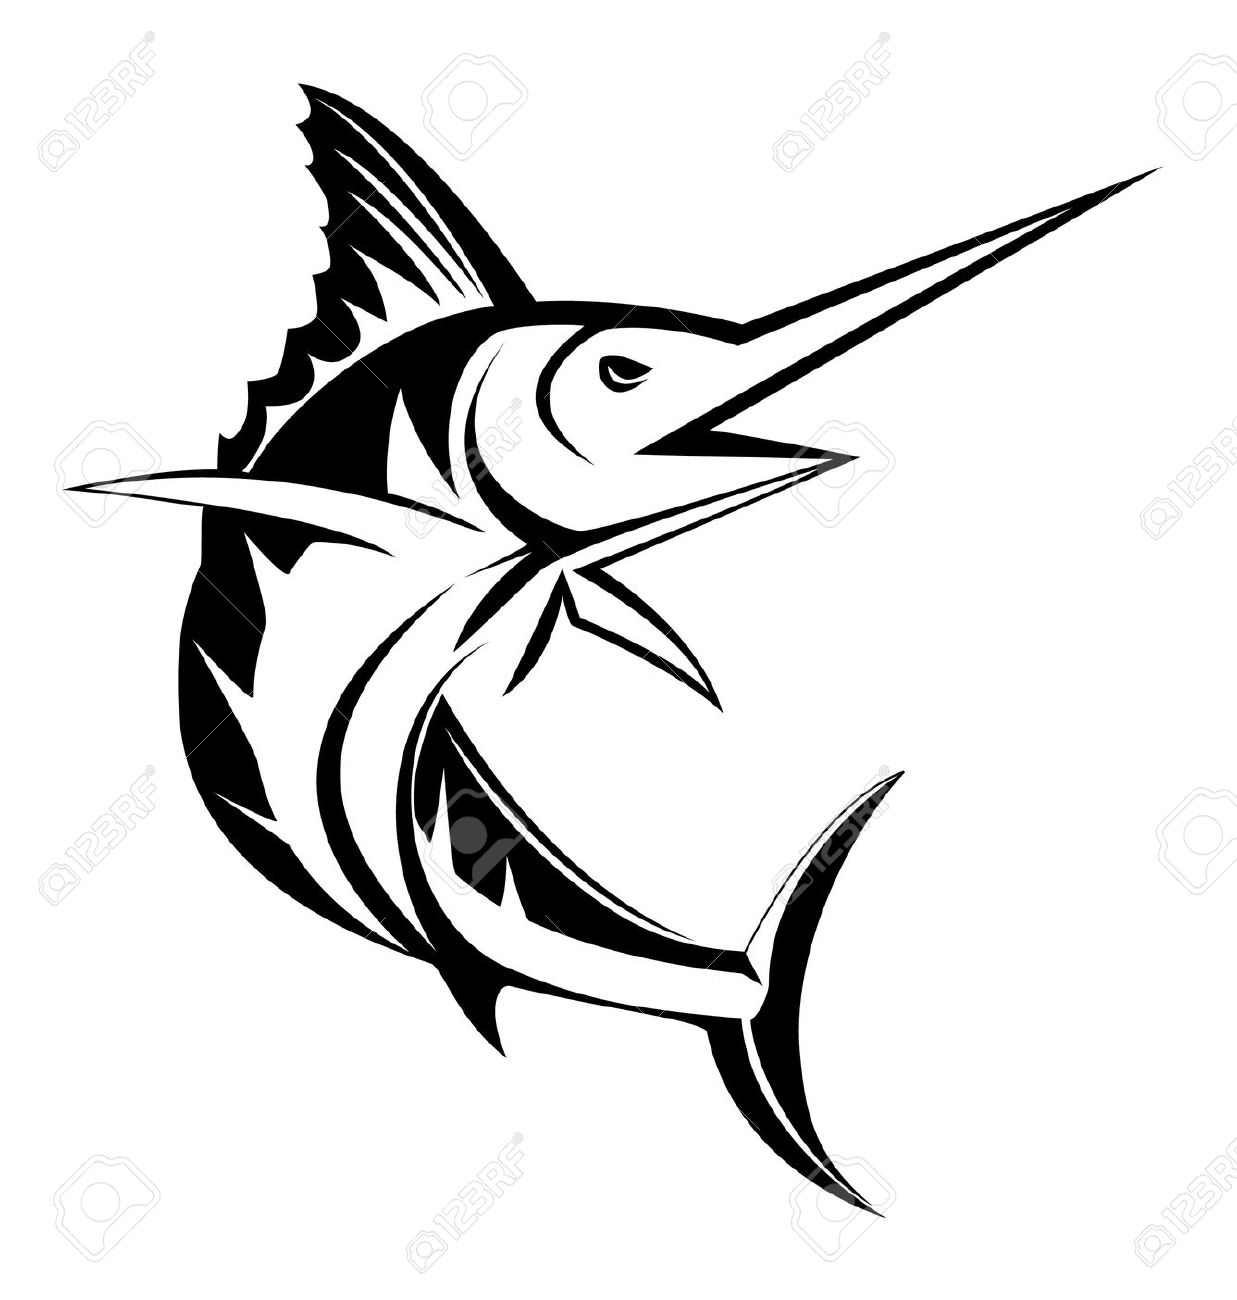 1,230 Marlin Stock Vector Illustration And Royalty Free Marlin Clipart.